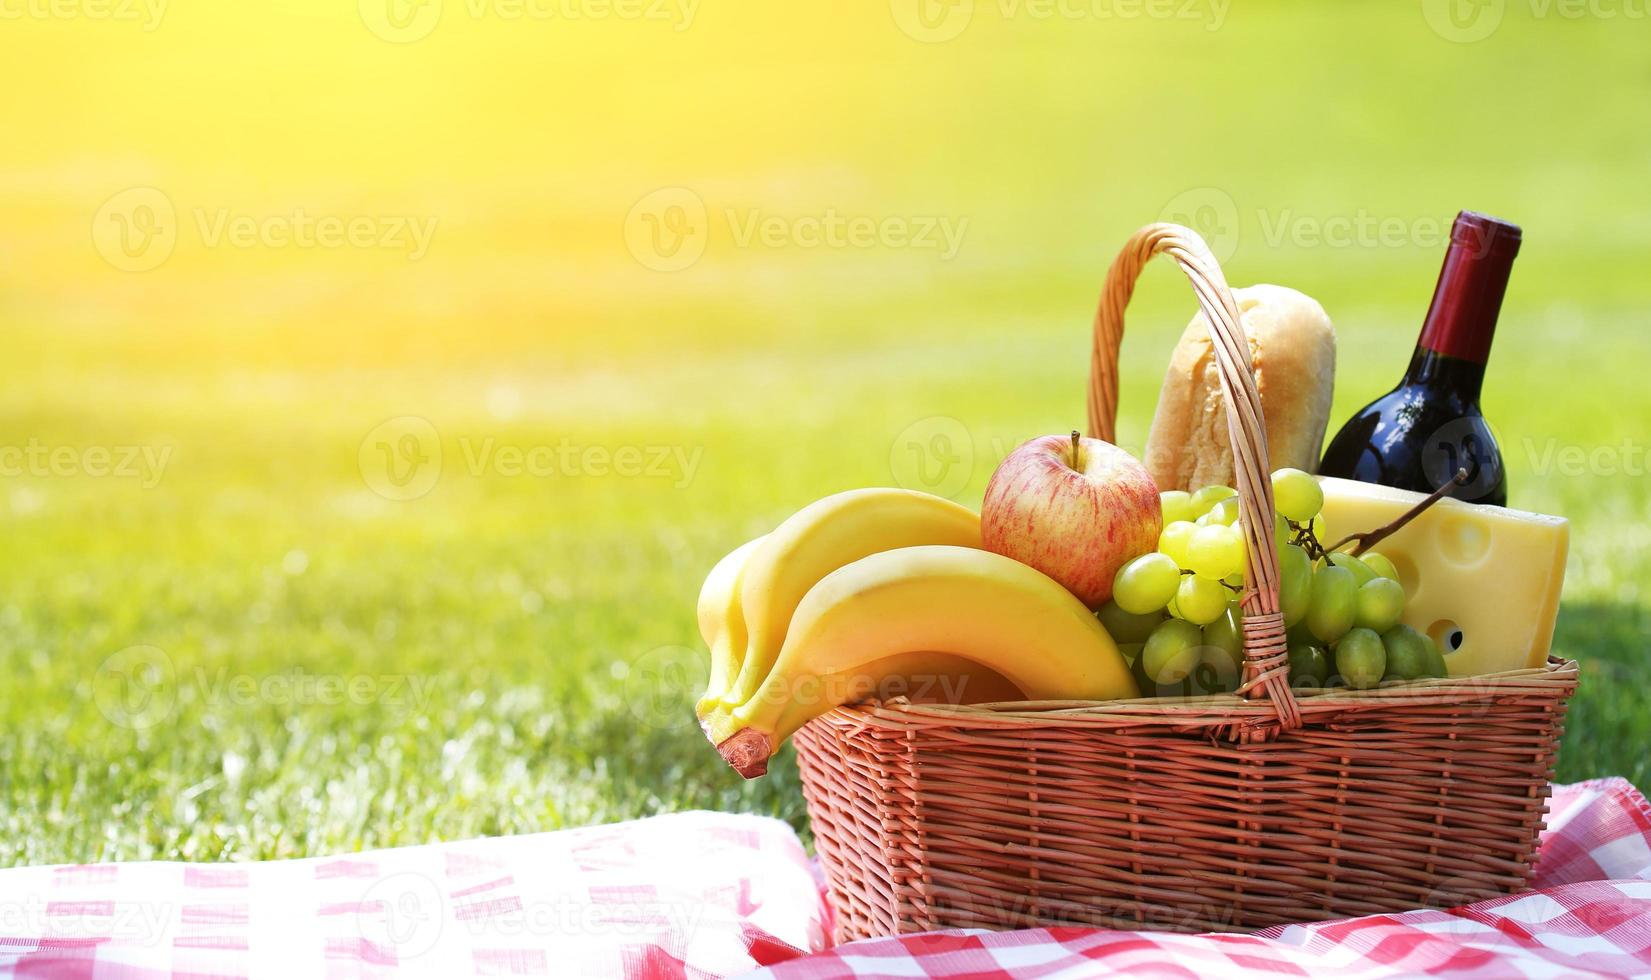 Picnic basket with food on grass photo